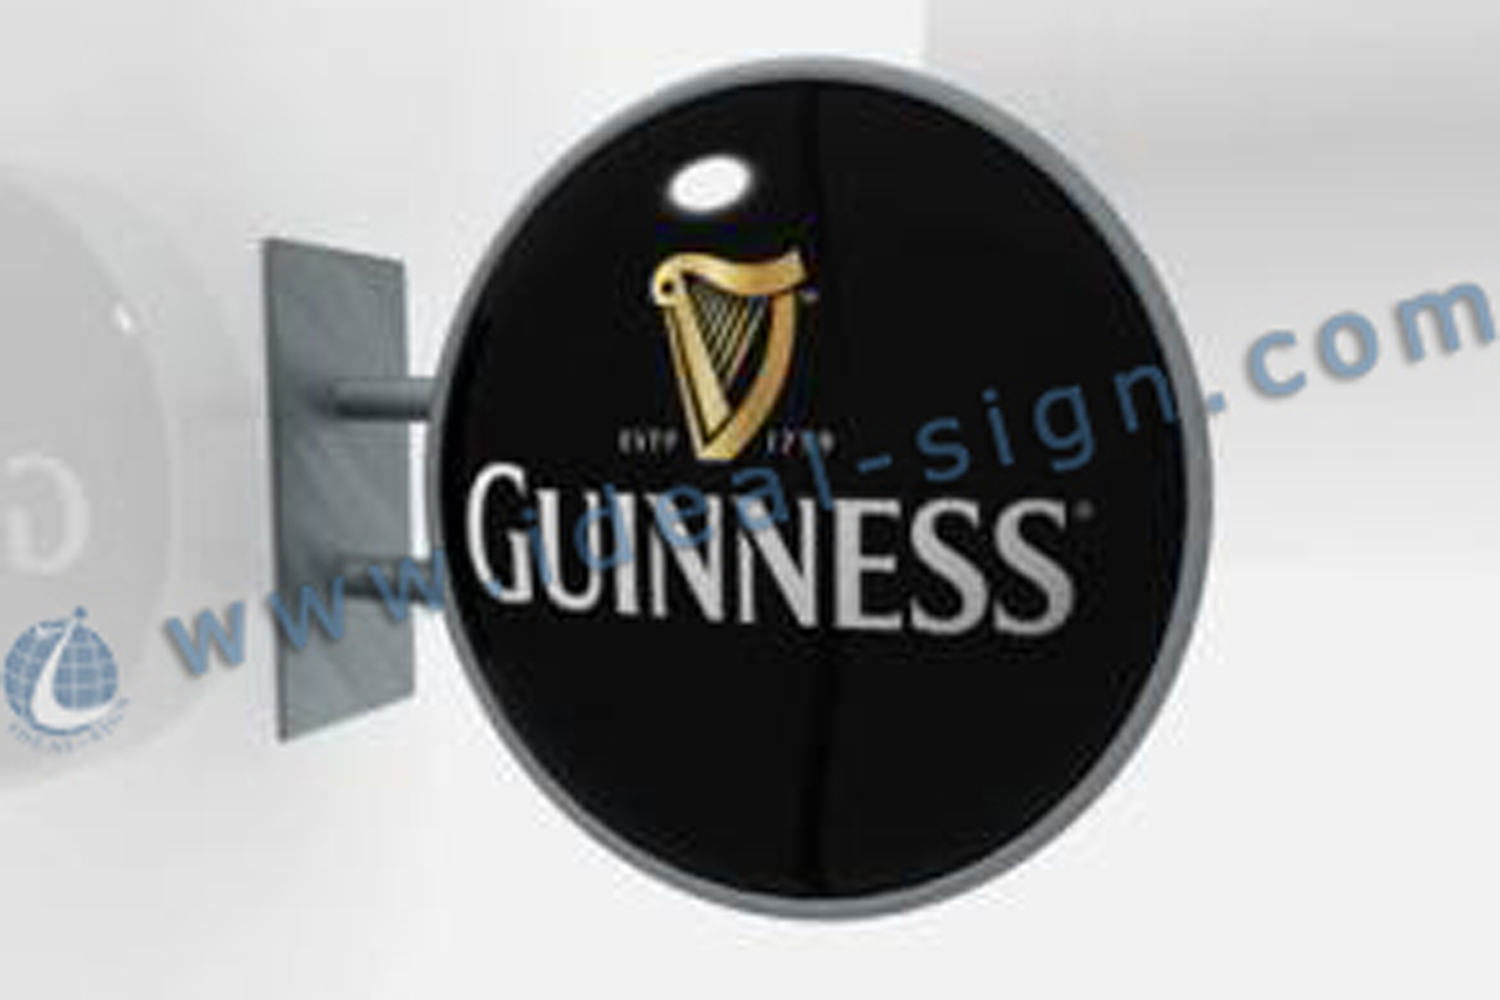 Round Guniness Vacuum Formed Light Box Exterior Wall Mounted Sign